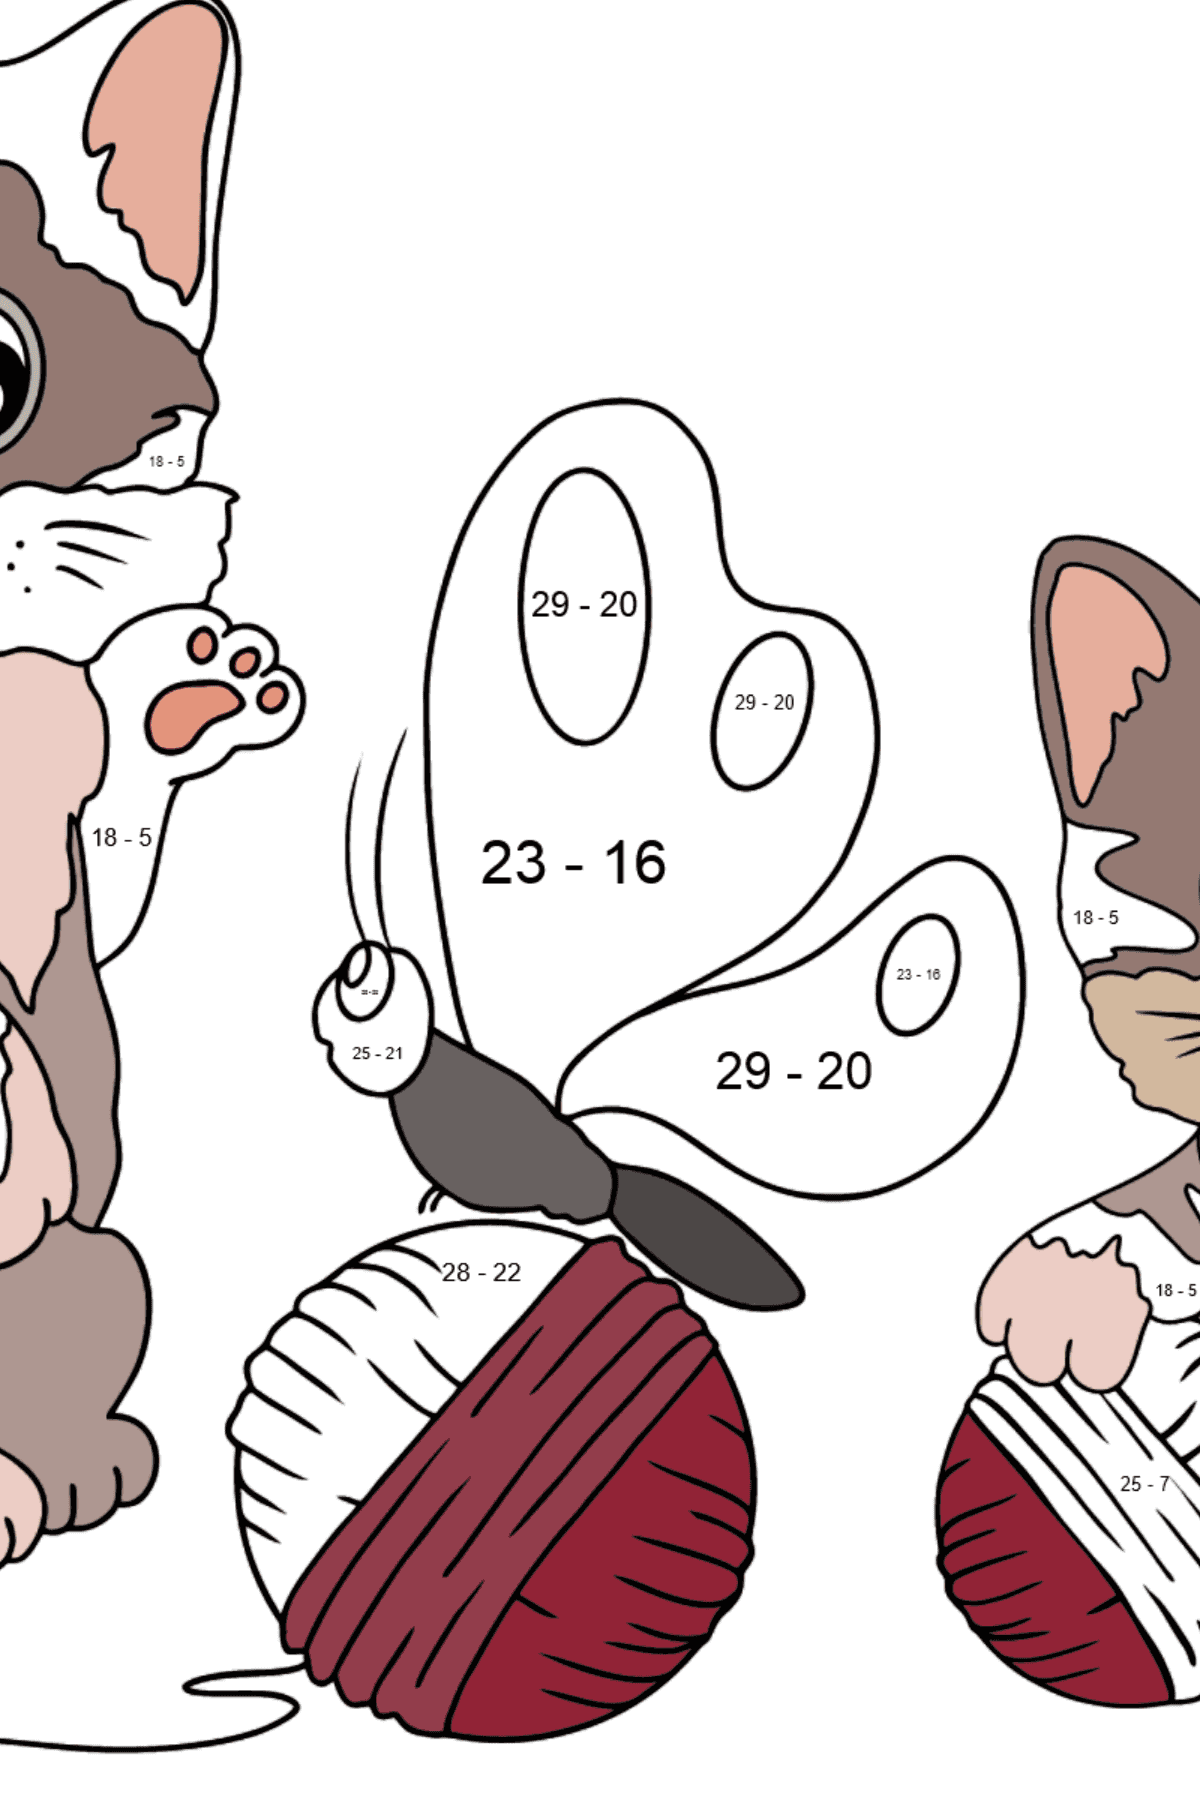 Coloring Page - Kittens are Playing with Threads - Math Coloring - Subtraction for Kids